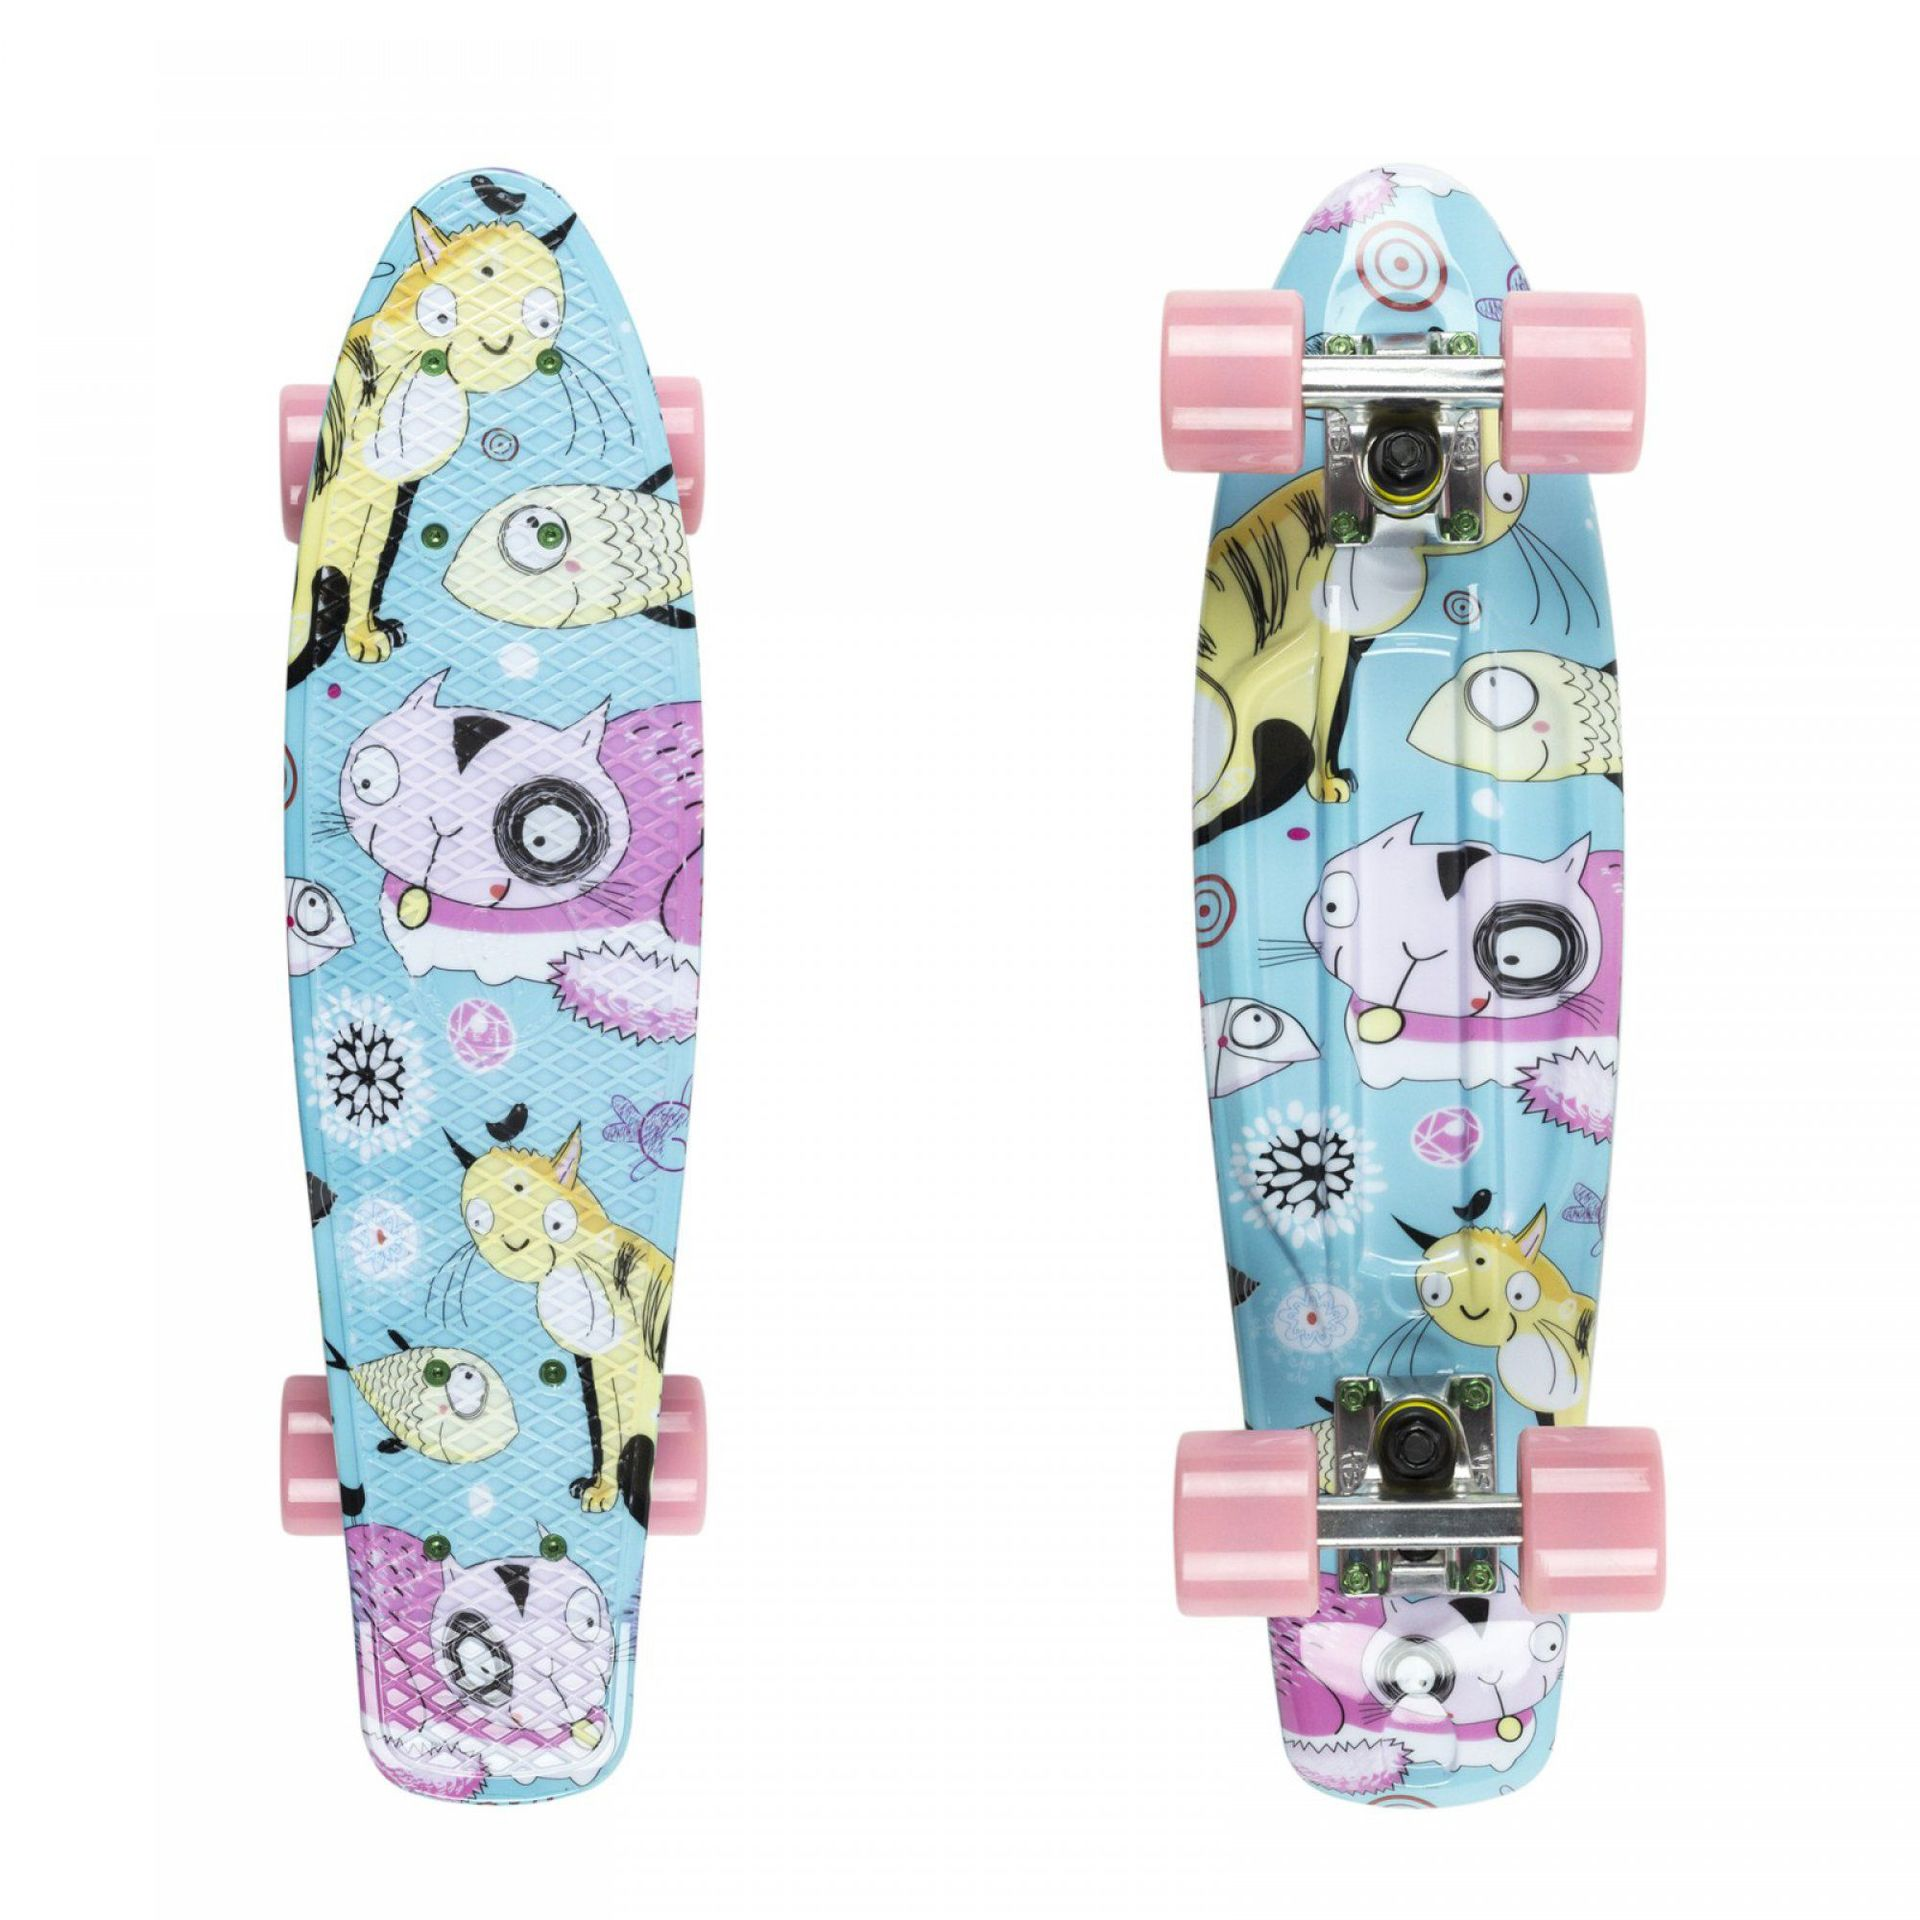 FISHBOARD FISH SKATEBOARDS PRINT CATS|SILVER|SUMMER PINK 1